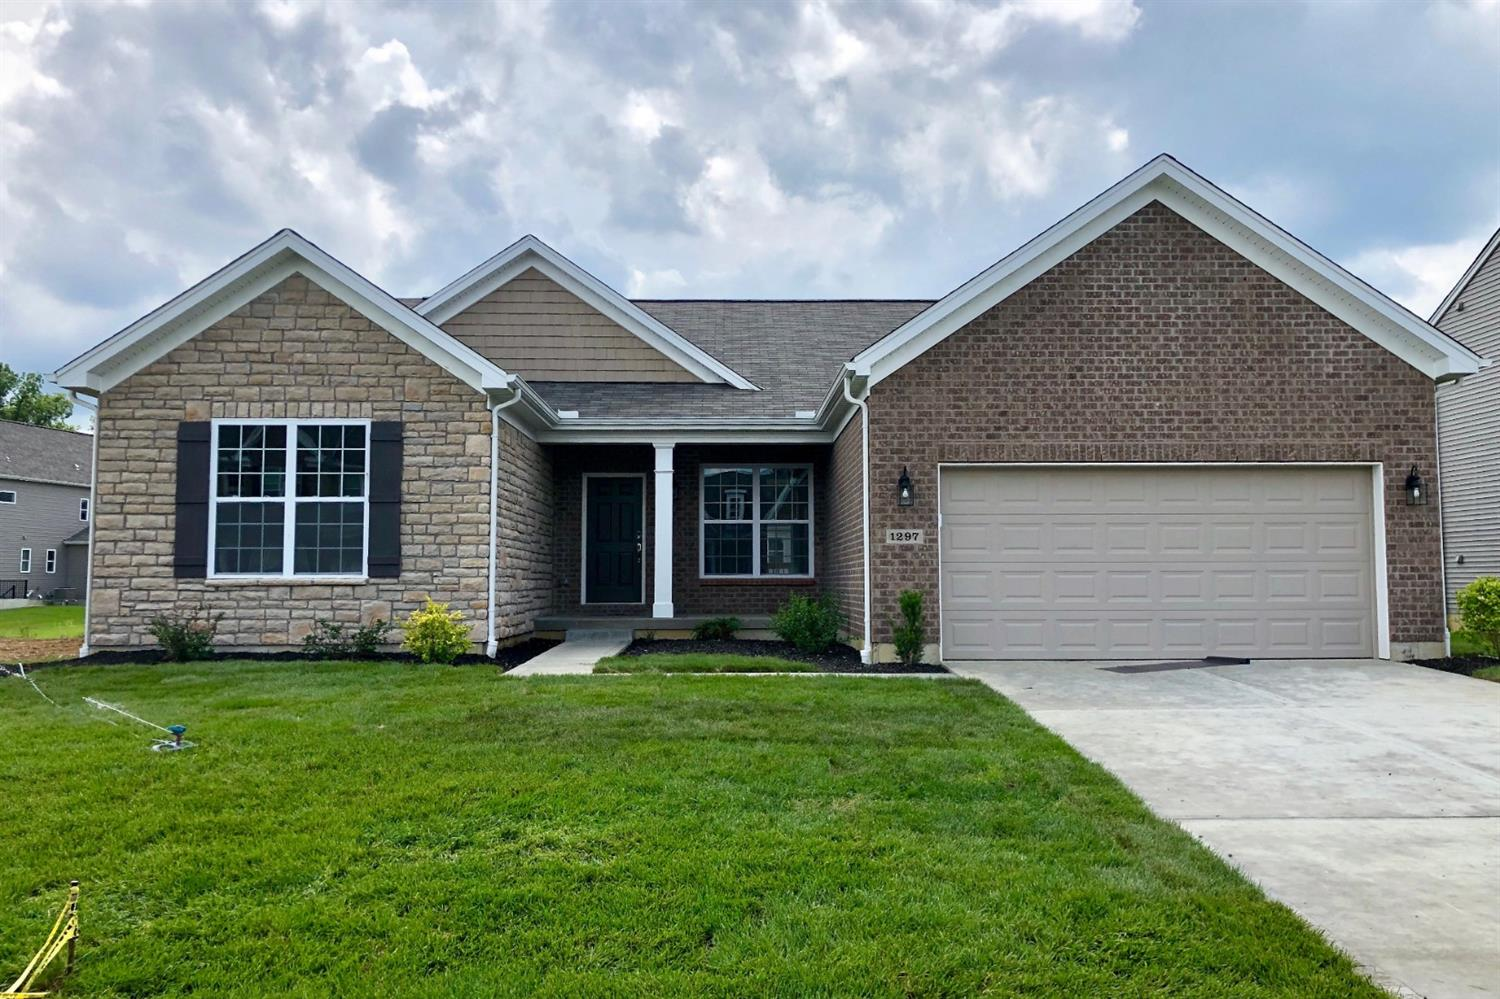 1297 Anacapa Ct, 35 Union Twp. (Clermont), OH